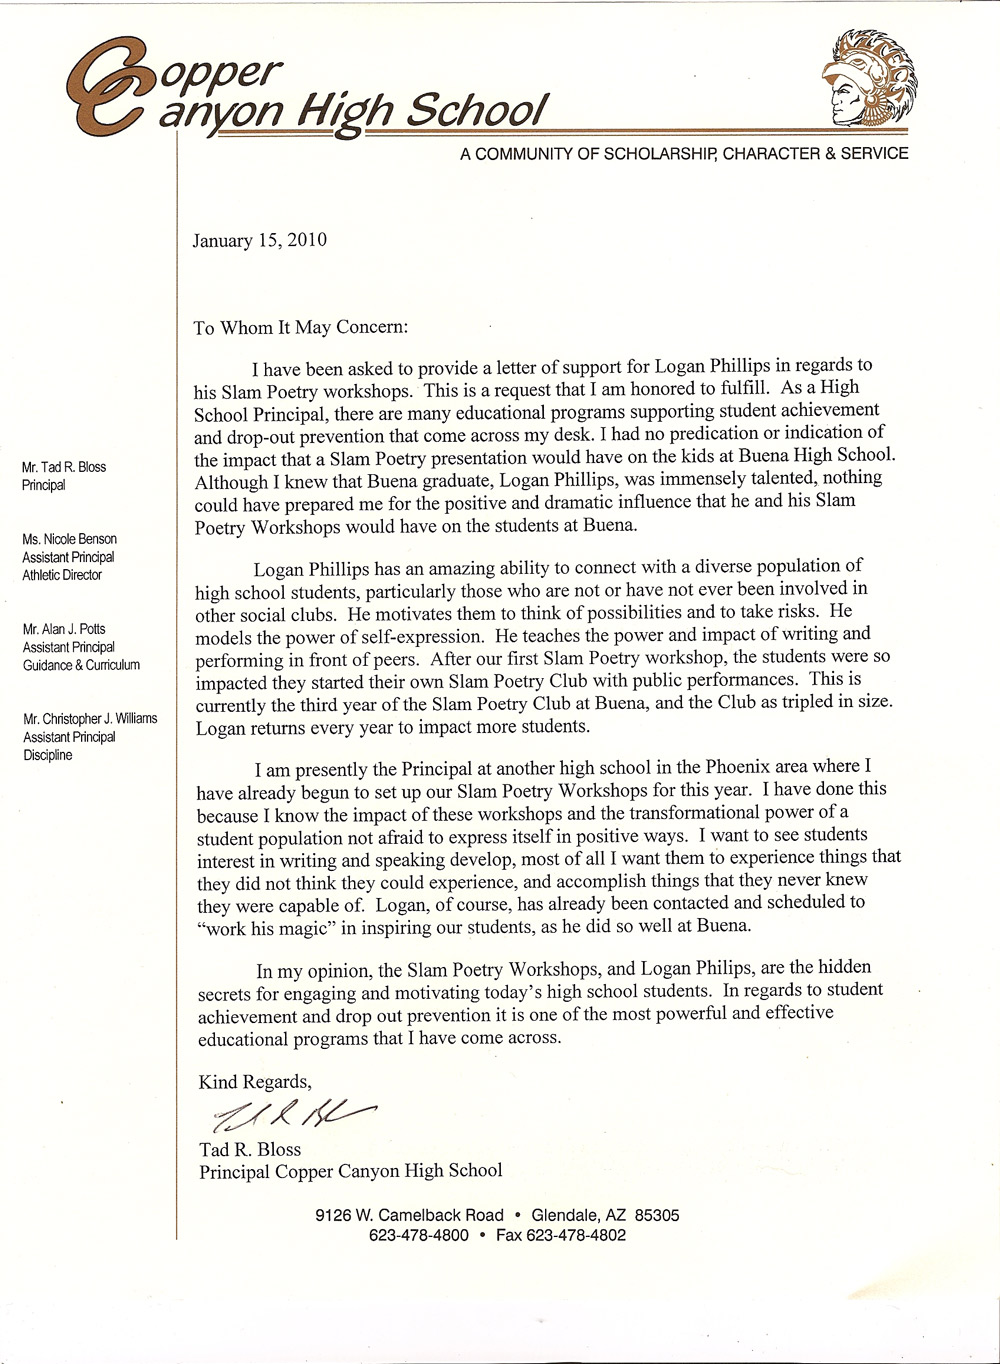 Letter of recommendation from a school principal